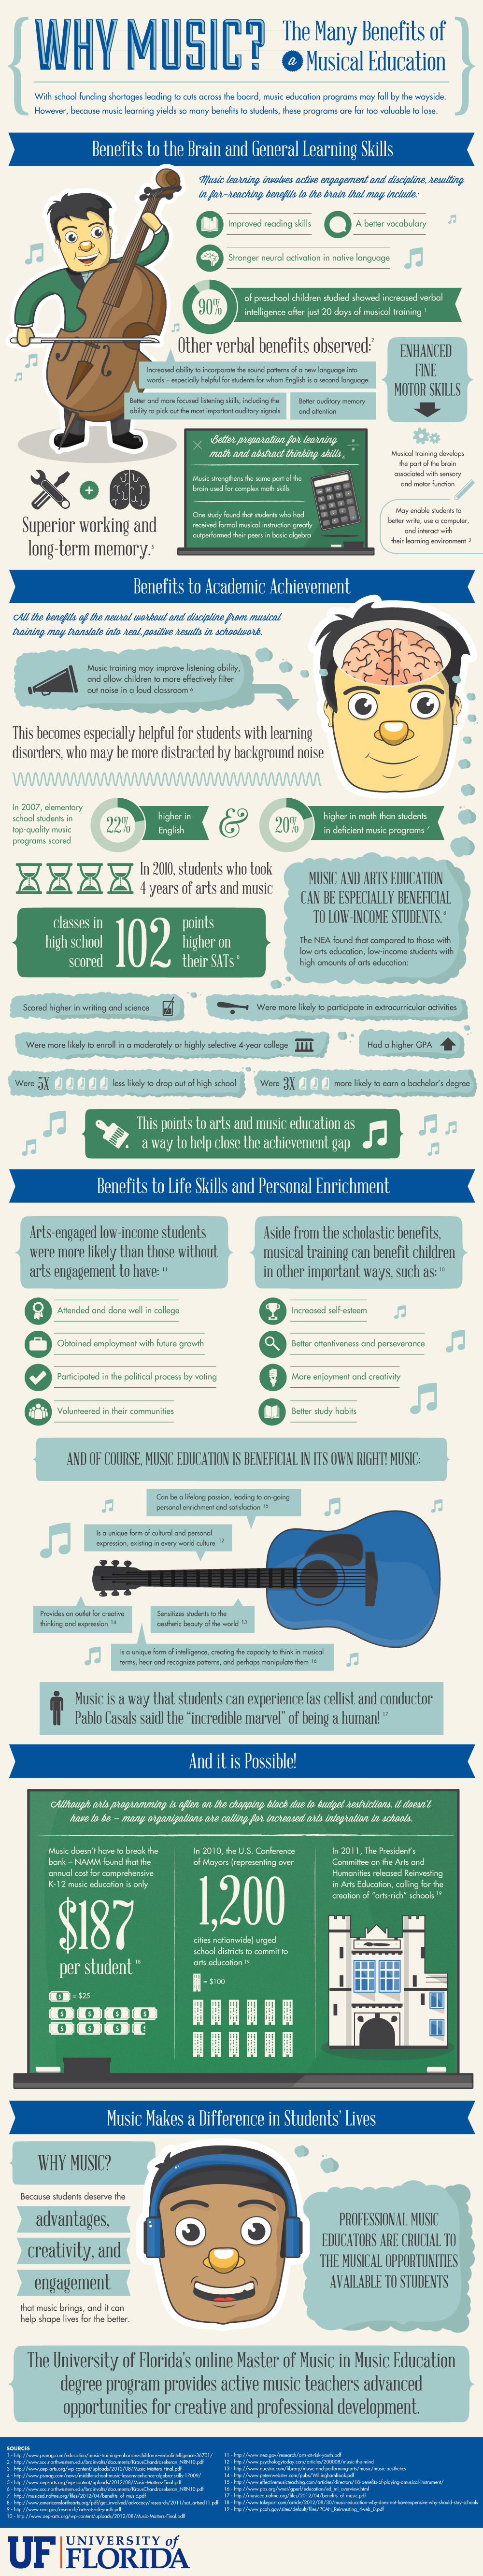 why-musc-the-many-benefits-of-musical-education_52553f1f62182